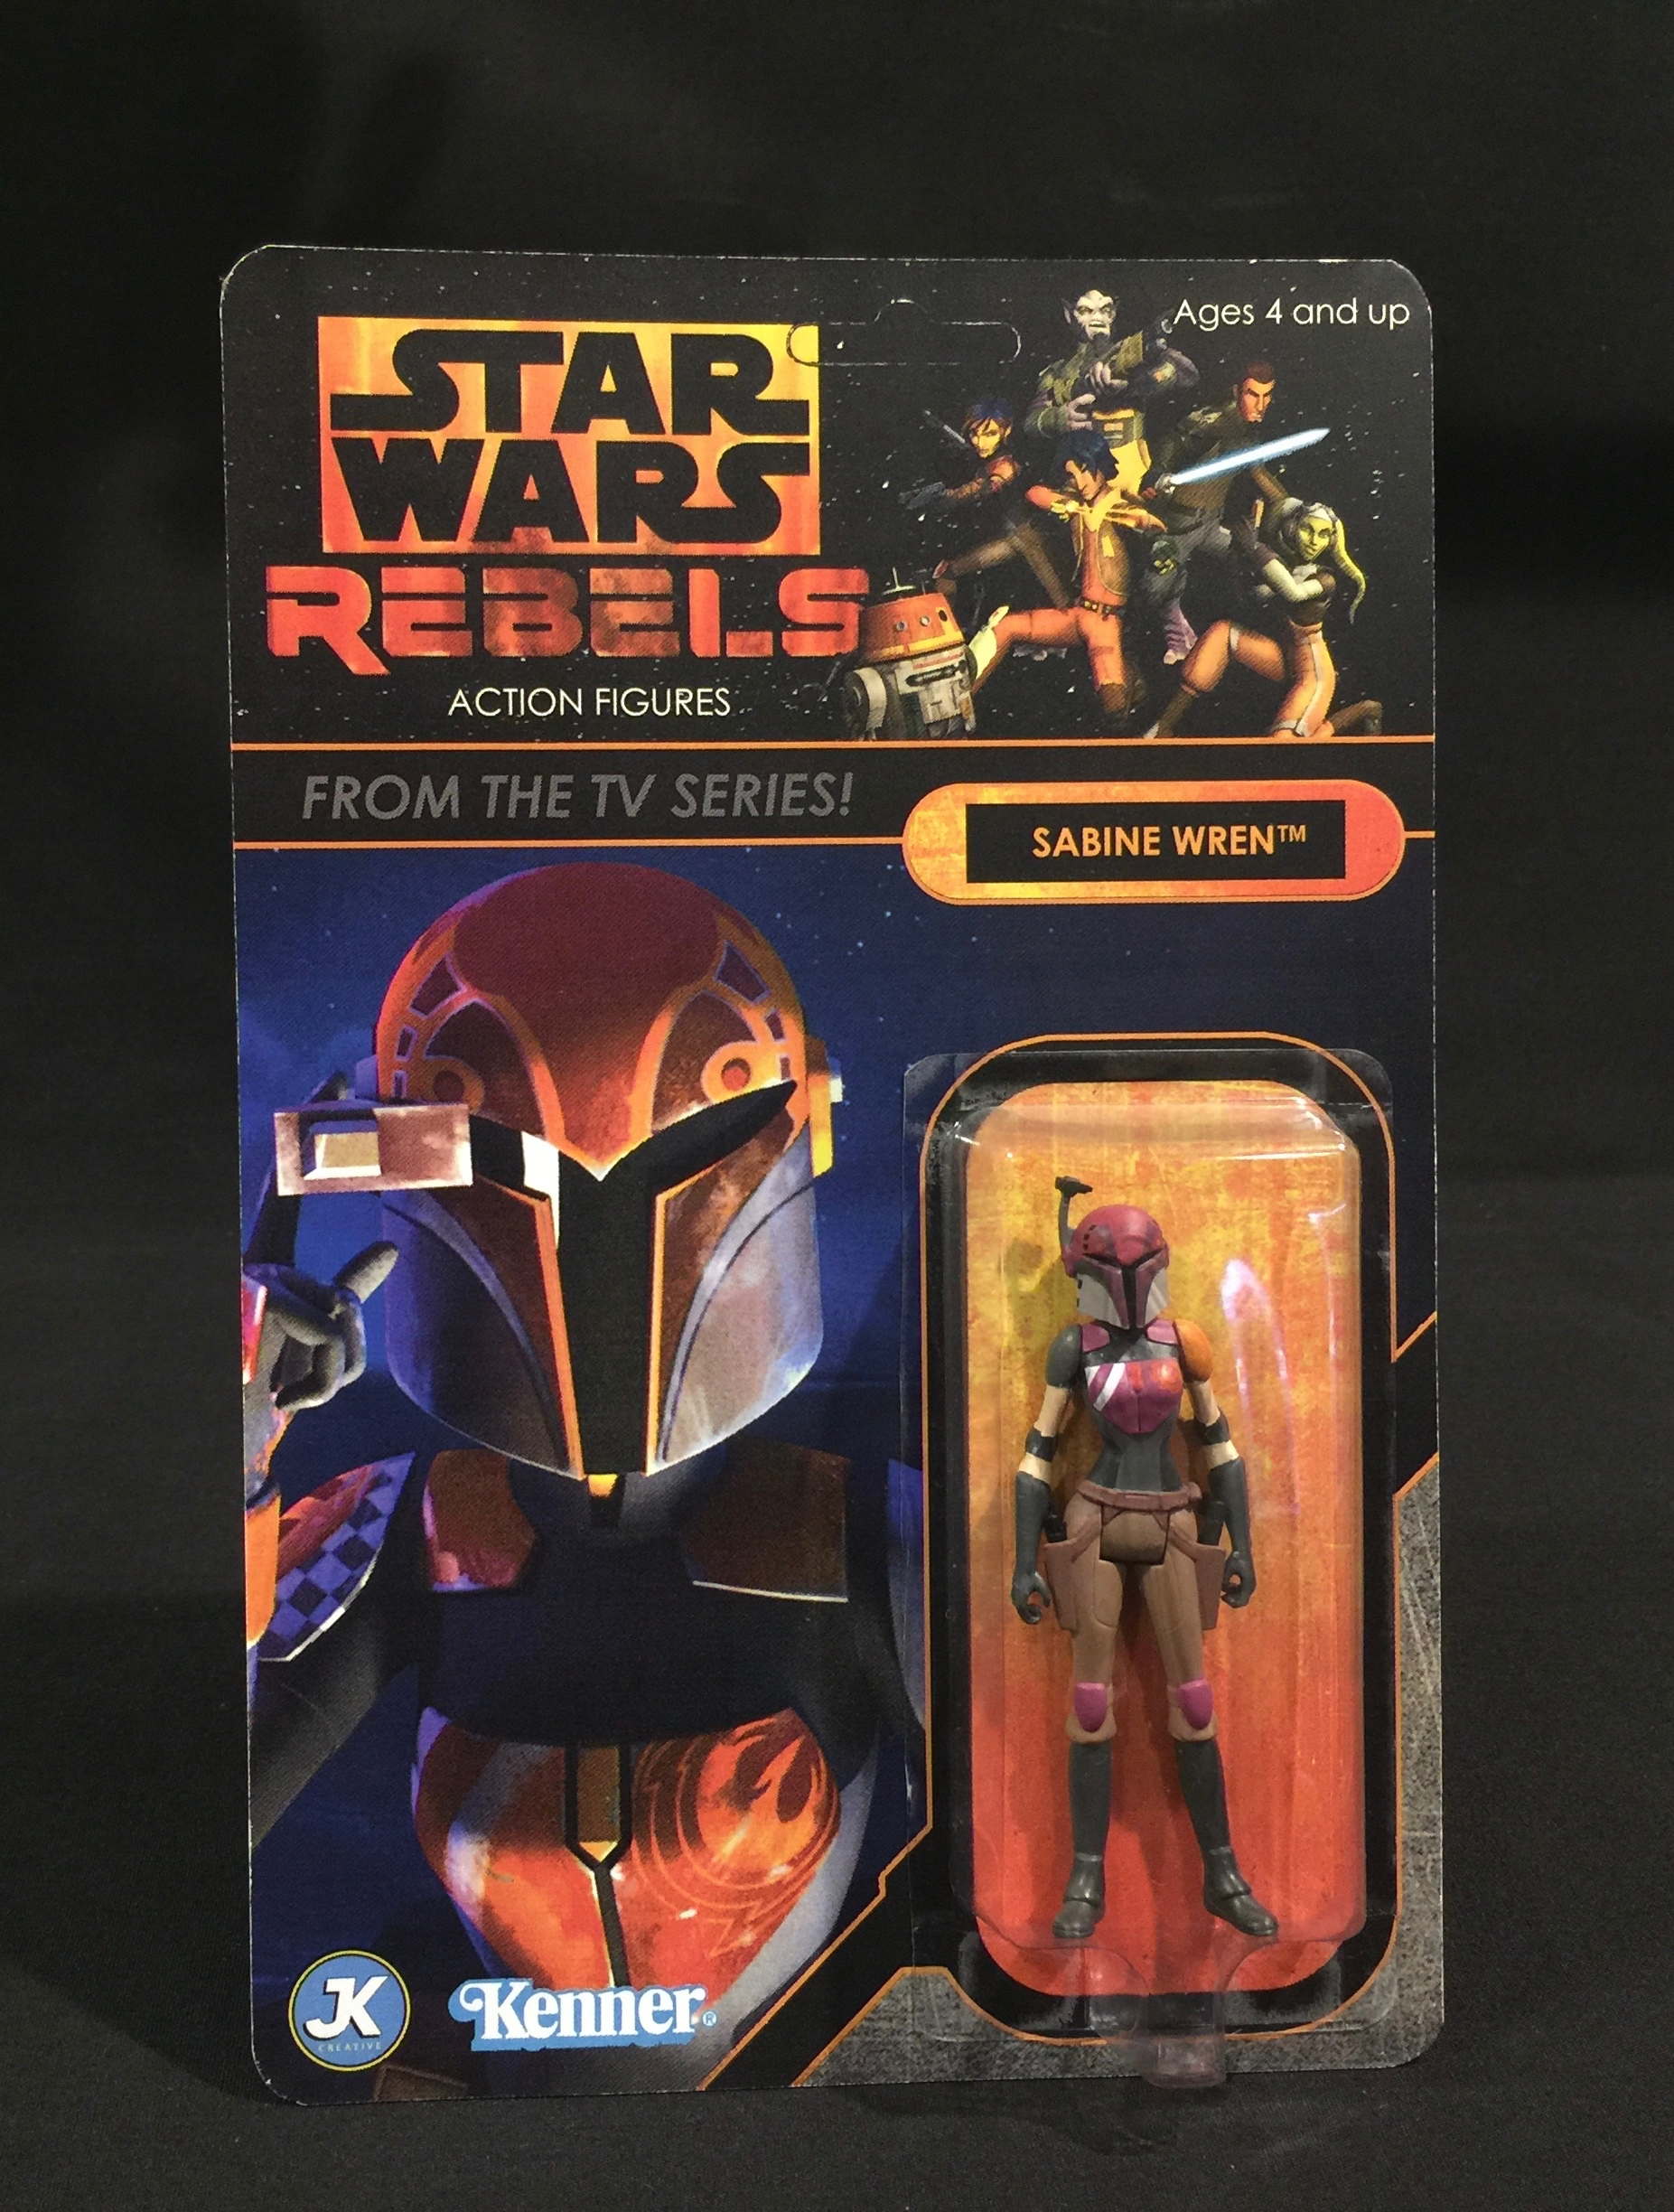 Sabine Wren - Rebles